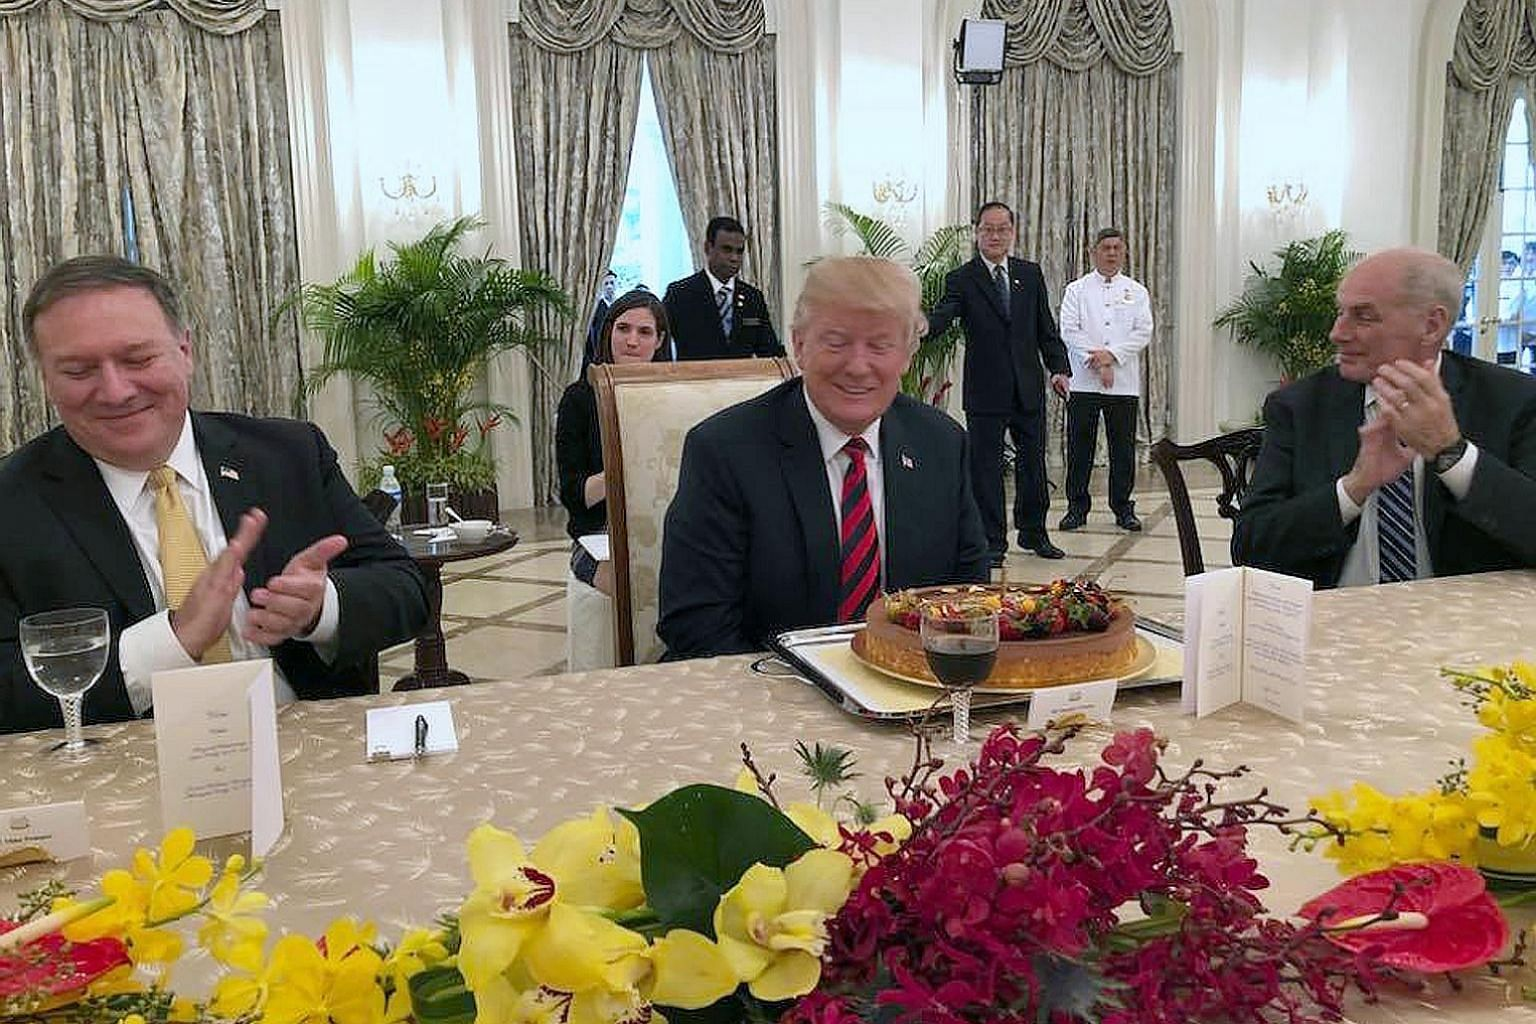 US President Donald Trump, who turns 72 on Thursday, celebrating his birthday early with Secretary of State Mike Pompeo (left) and Chief of Staff John Kelly yesterday. He was greeted with a birthday cake when he met Prime Minister Lee Hsien Loong for